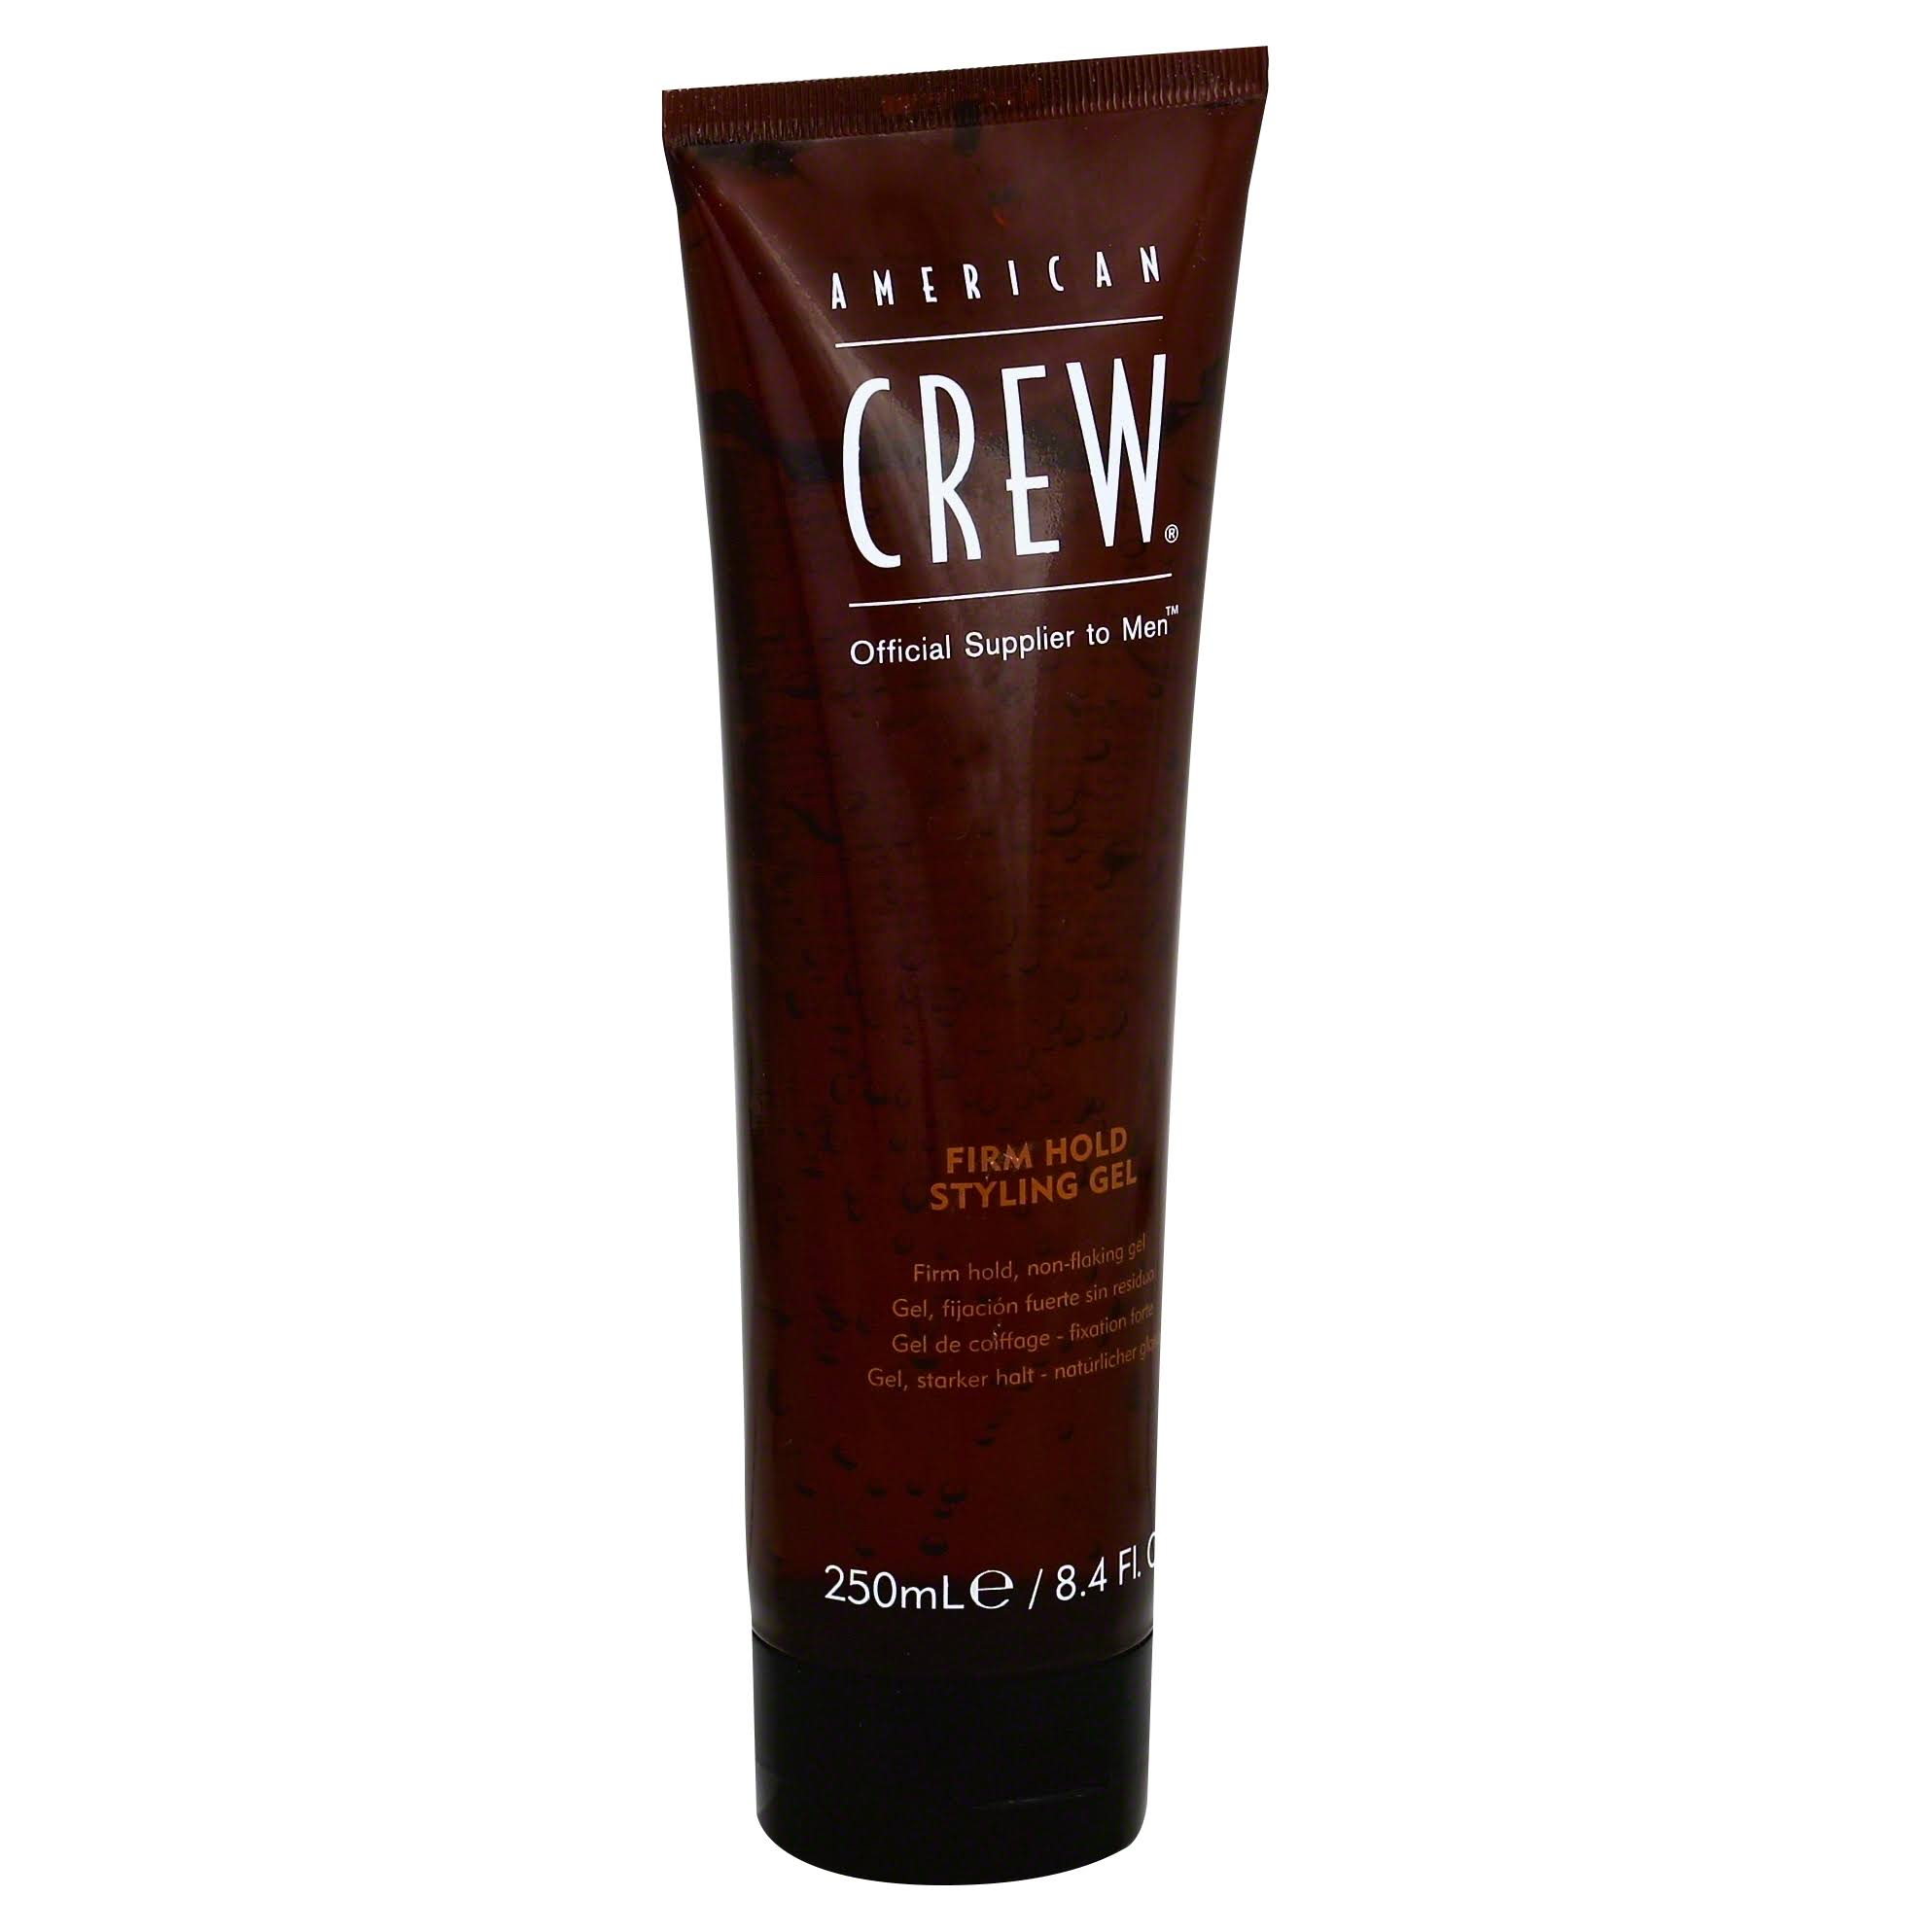 American Crew Styling Gel Firm Hold